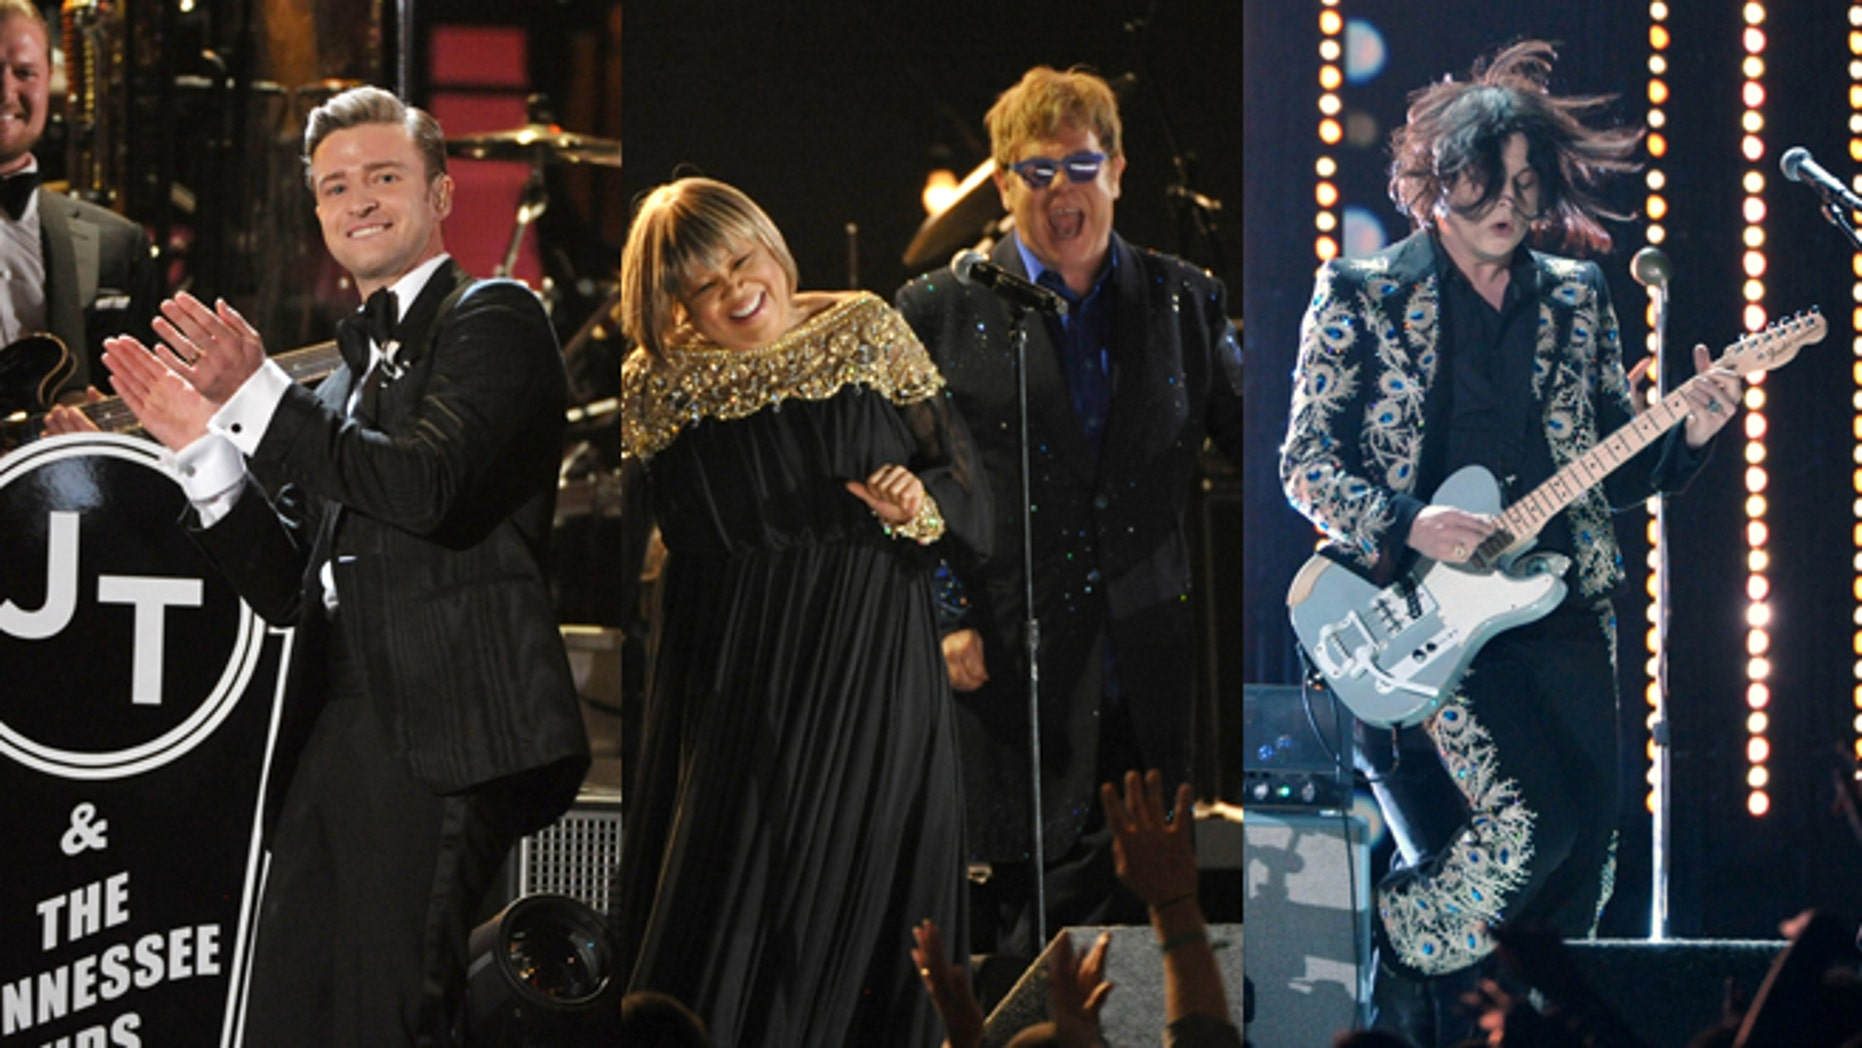 Feb. 10, 2013: Justin Timberlake, Elton John (with Mavis Staples) and  Jack White perform at the 55th annual Grammy Awards in Los Angeles.